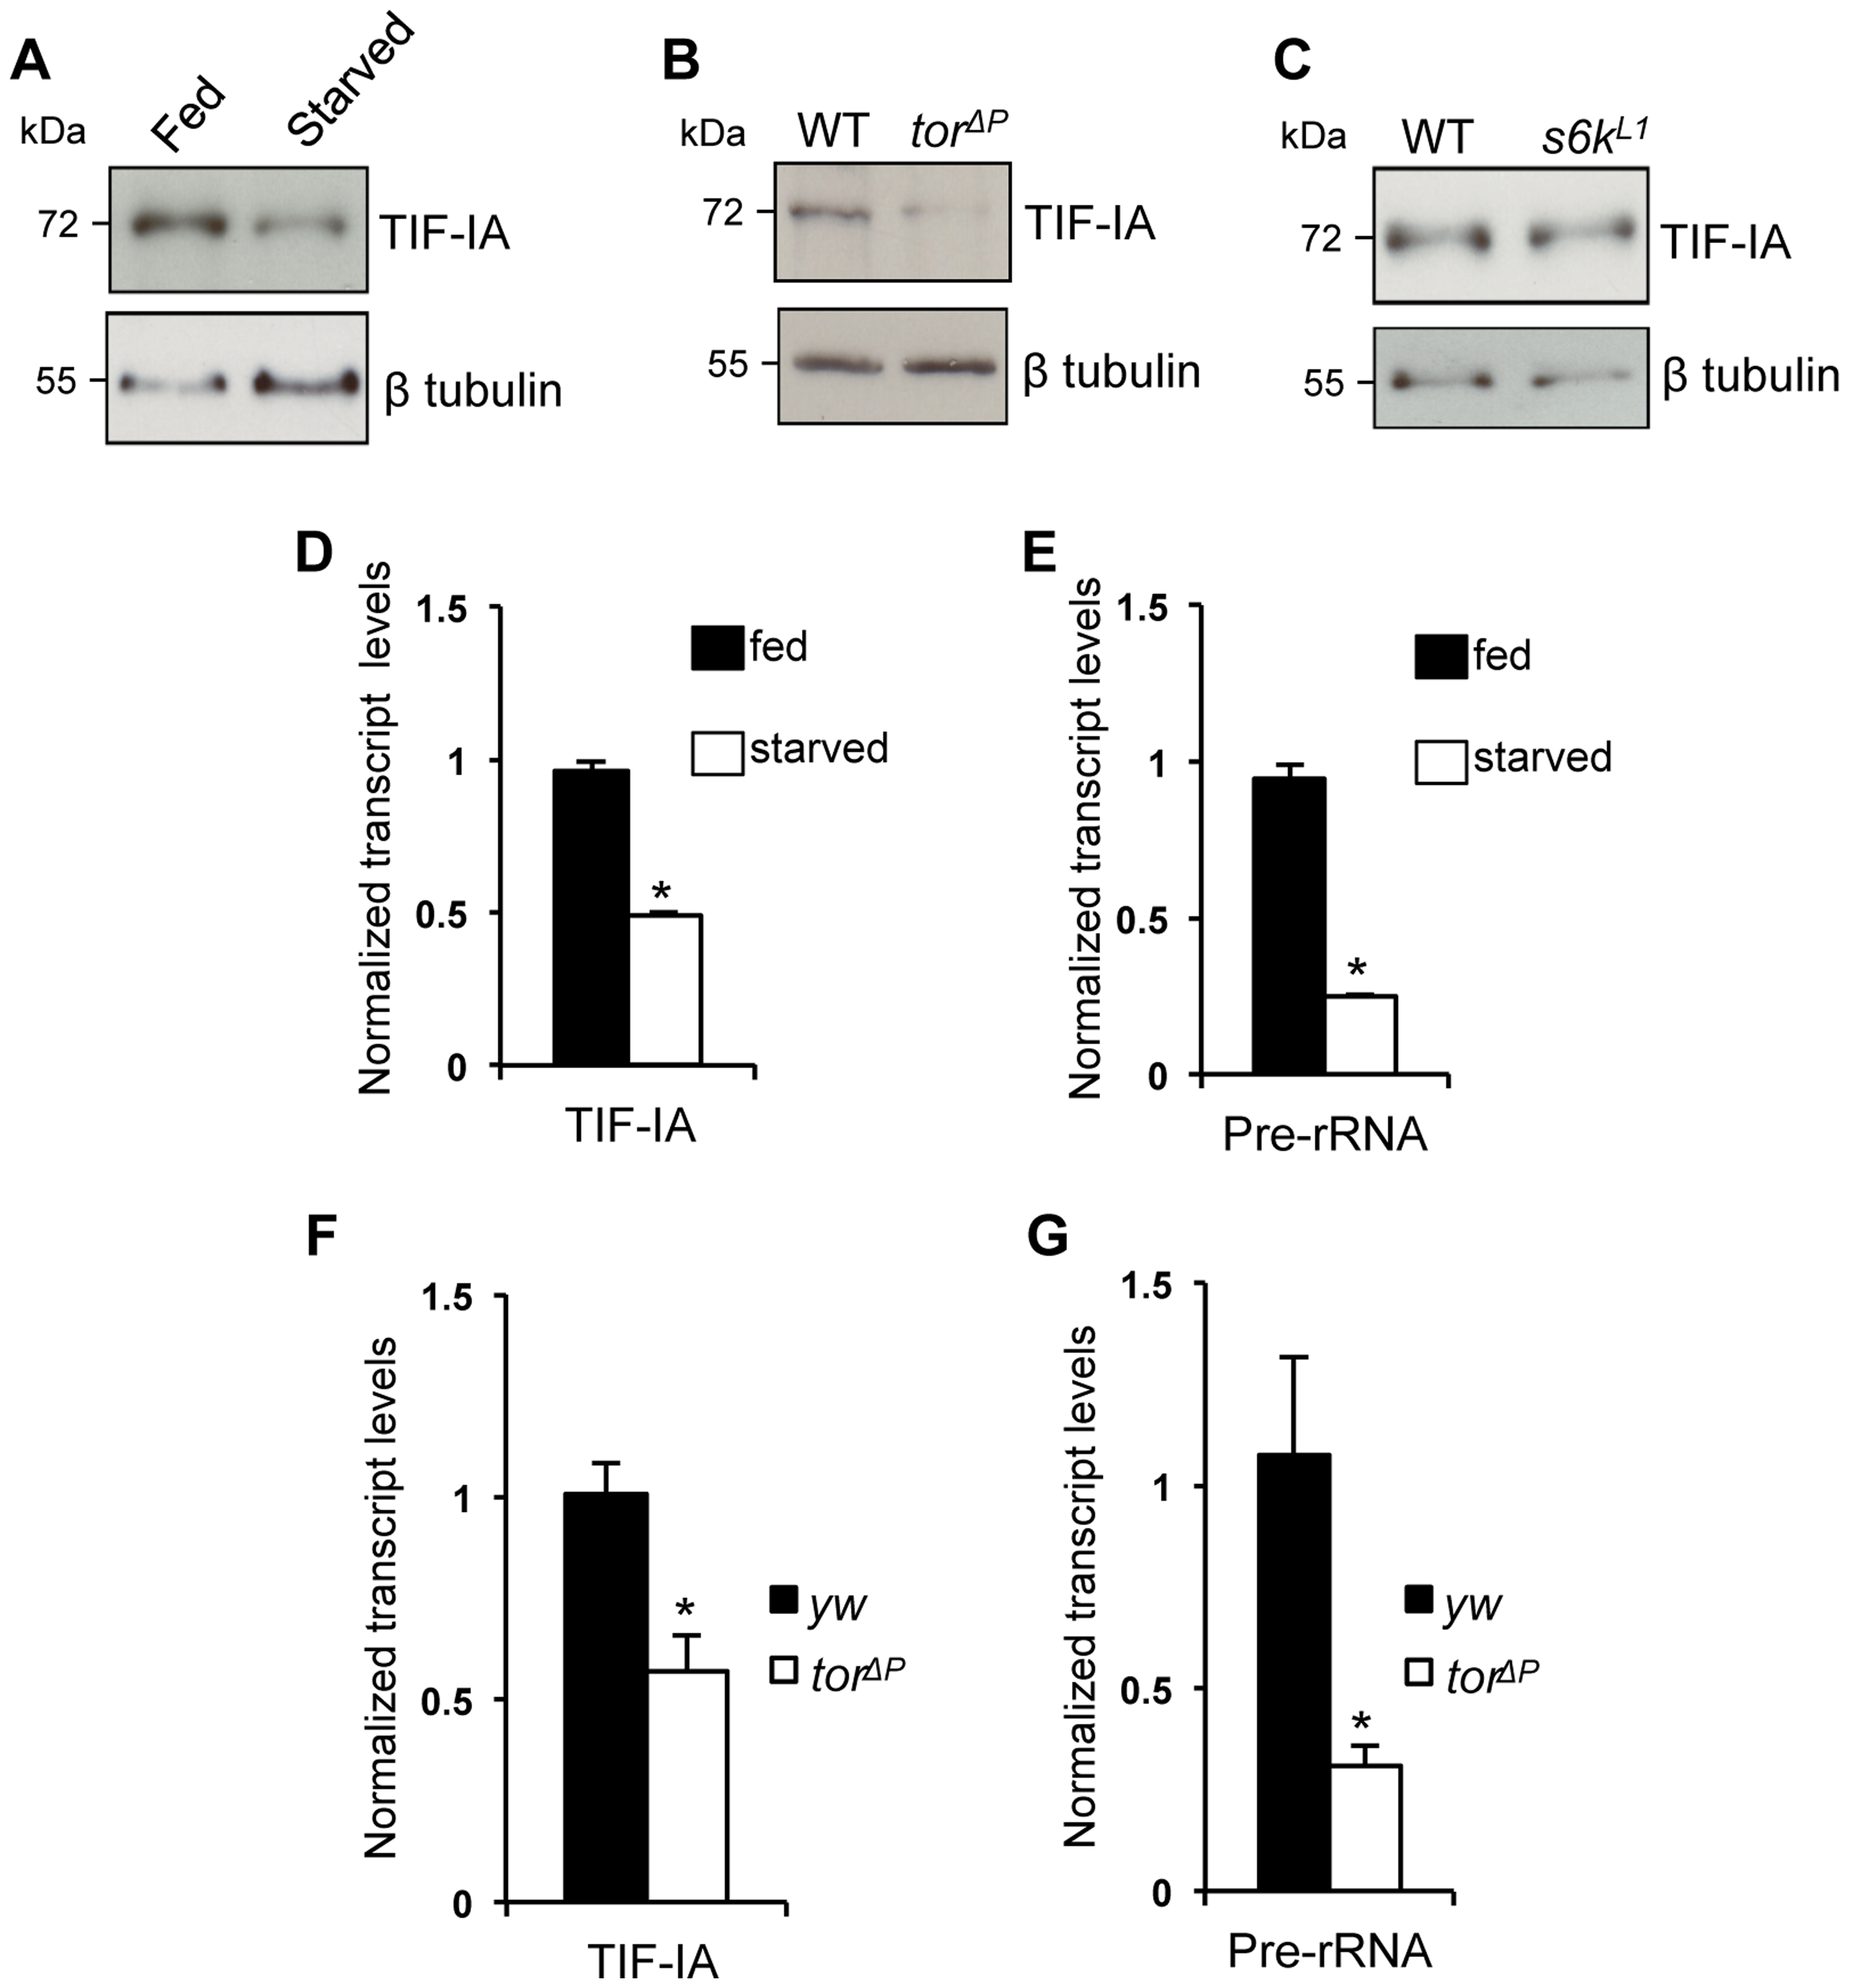 Nutrition-TOR signaling maintains TIF-IA mRNA and protein levels in larvae.